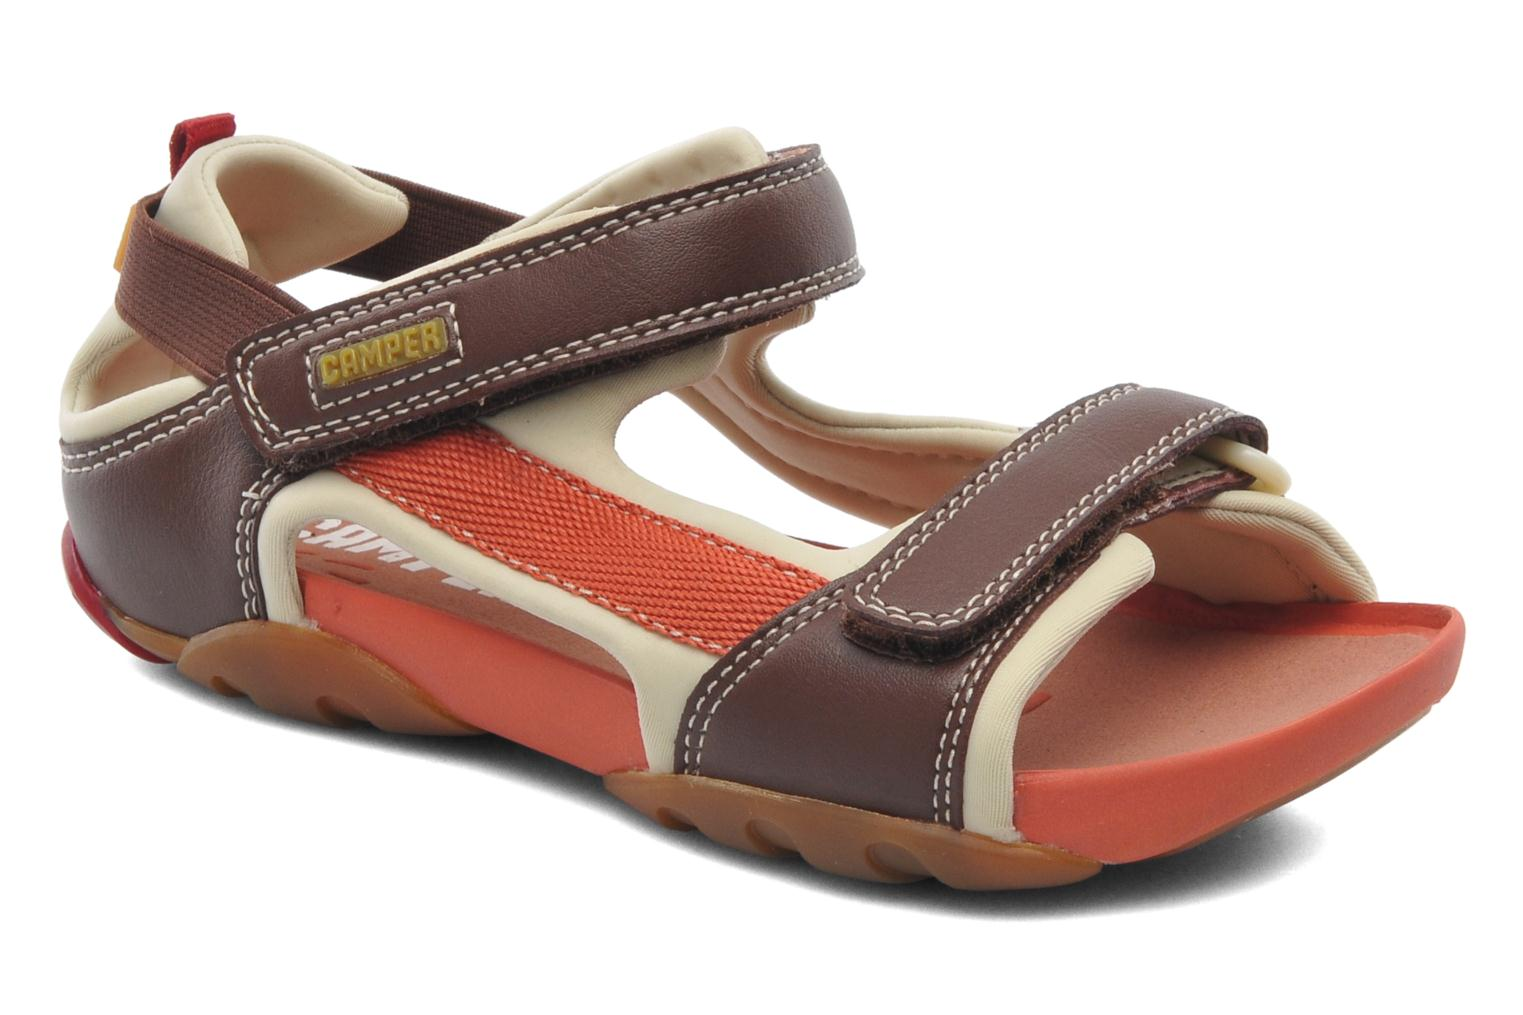 Sandalen Ous Kids 80188 by Camper